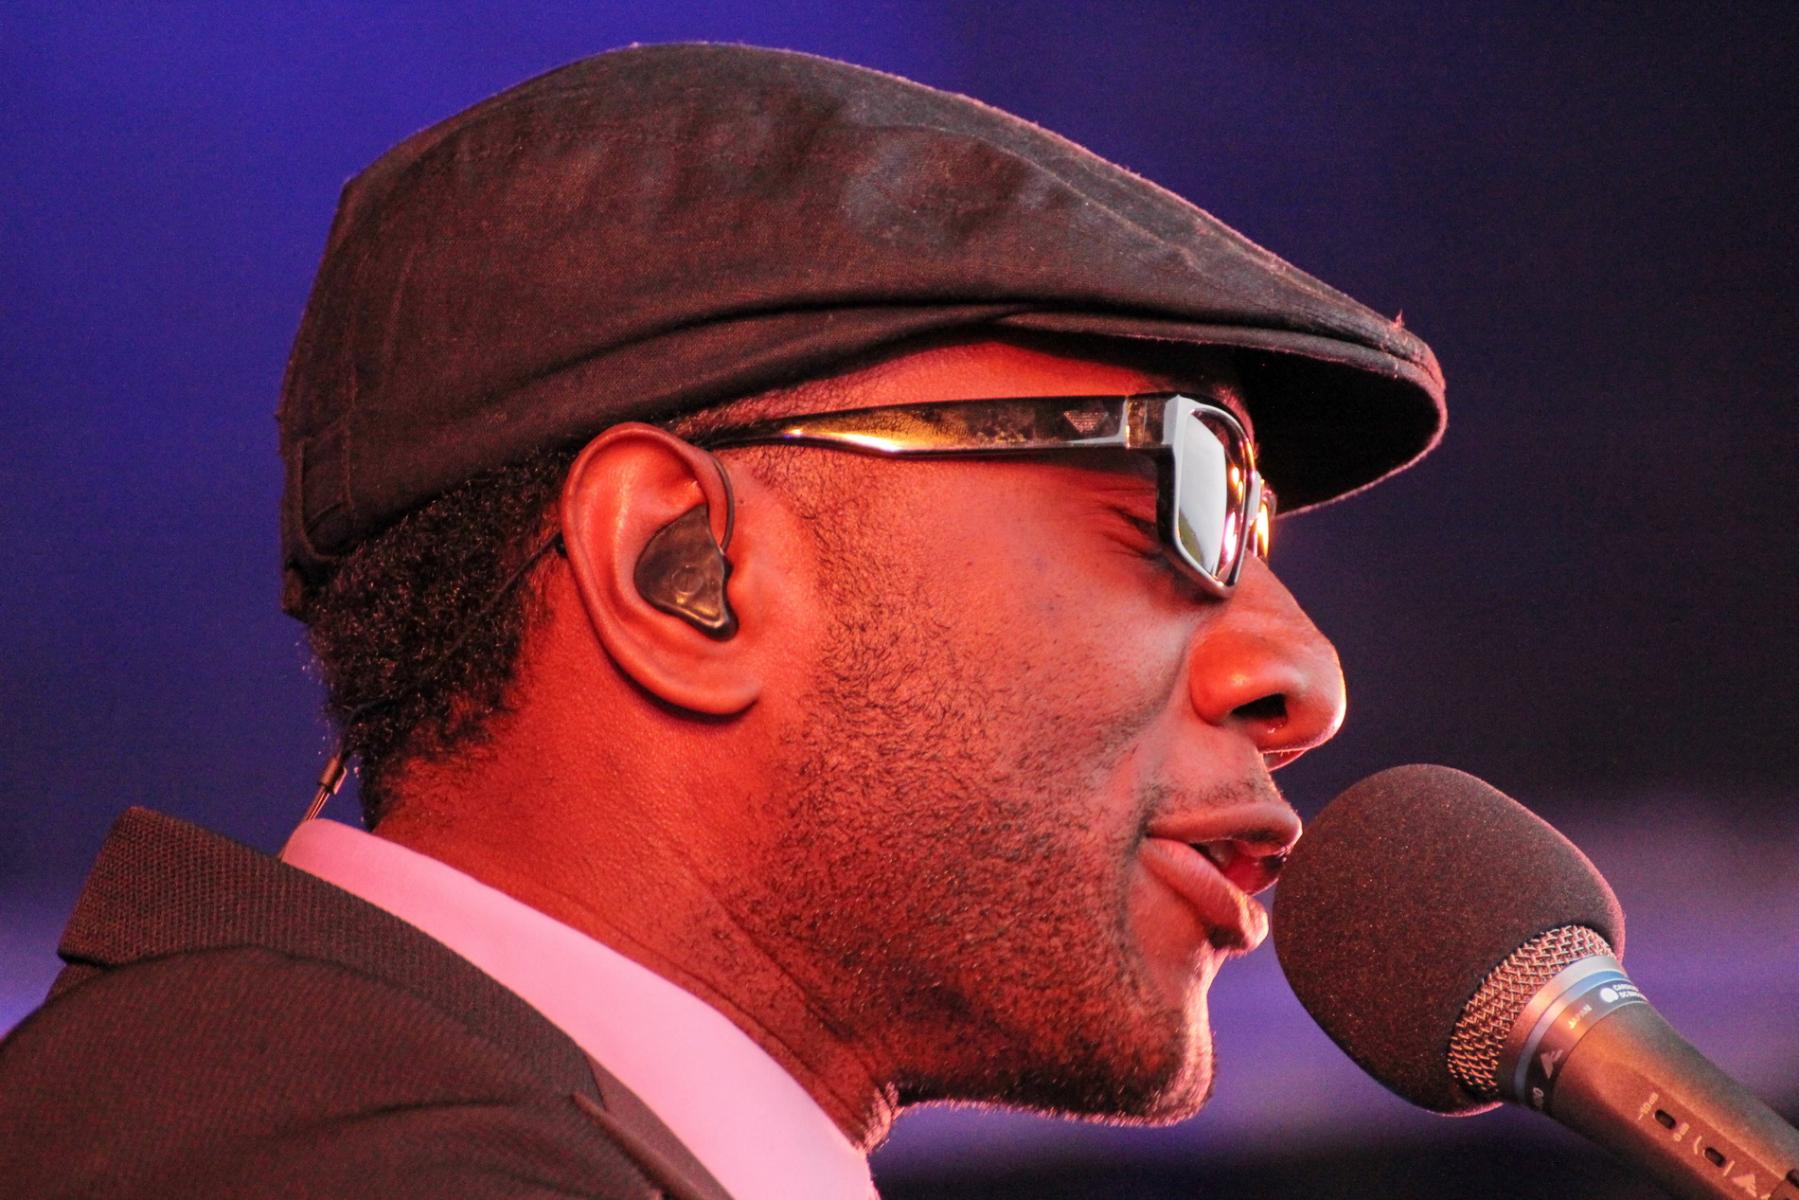 Aloe Blacc - More FM Summer Vineyard Tour - Martinborough - Feb 2012